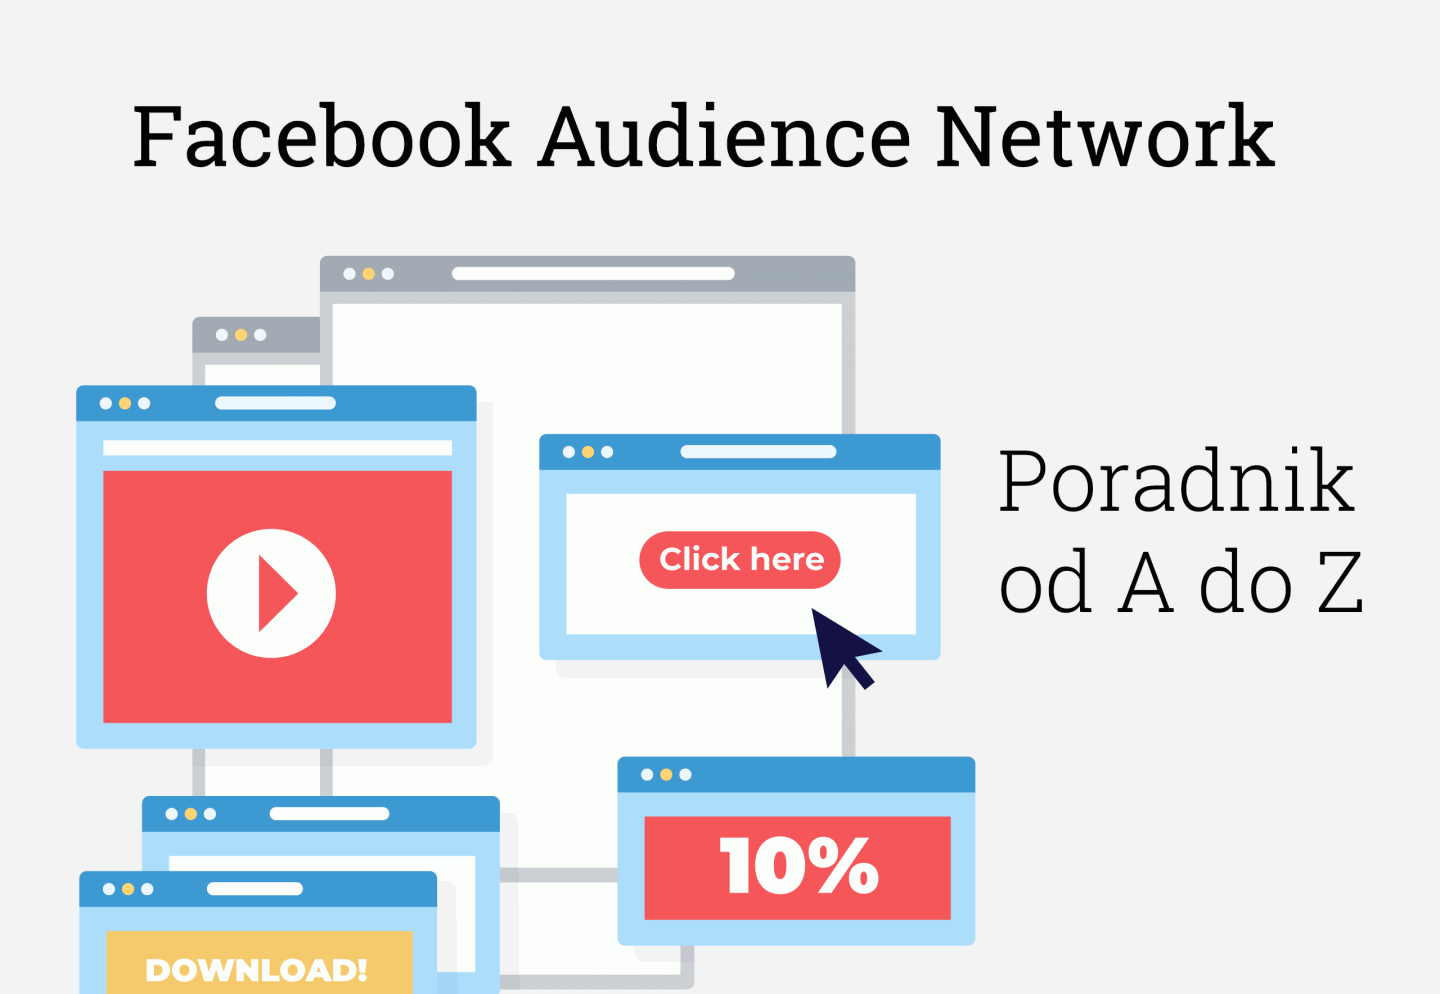 Facebook Audience Network Poradnik - cover photo